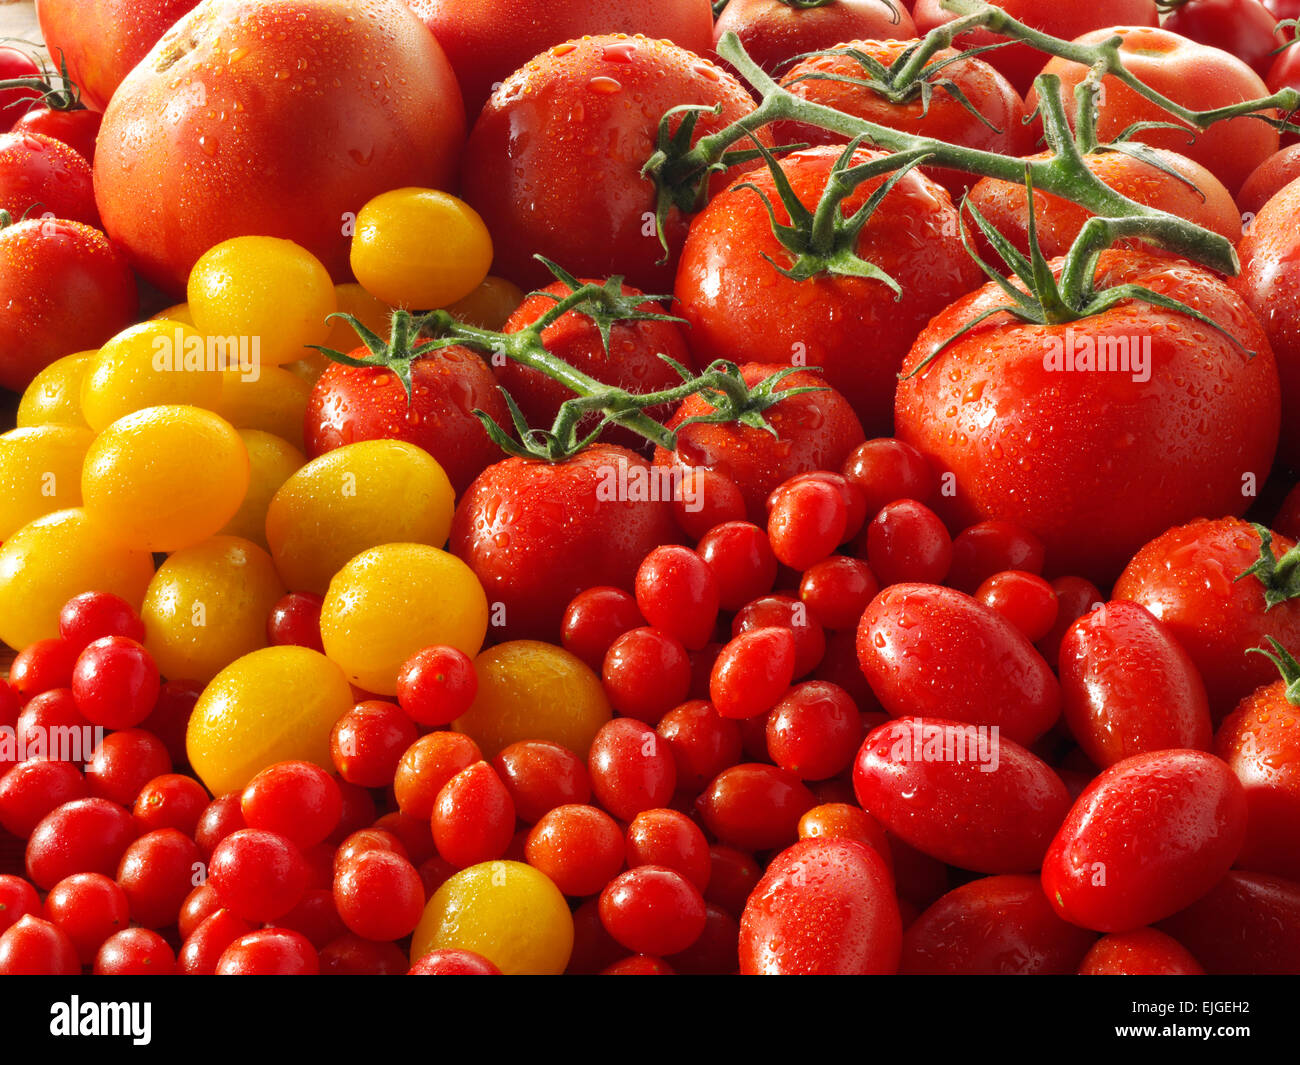 mixed fresh whole tomatoes - Stock Image